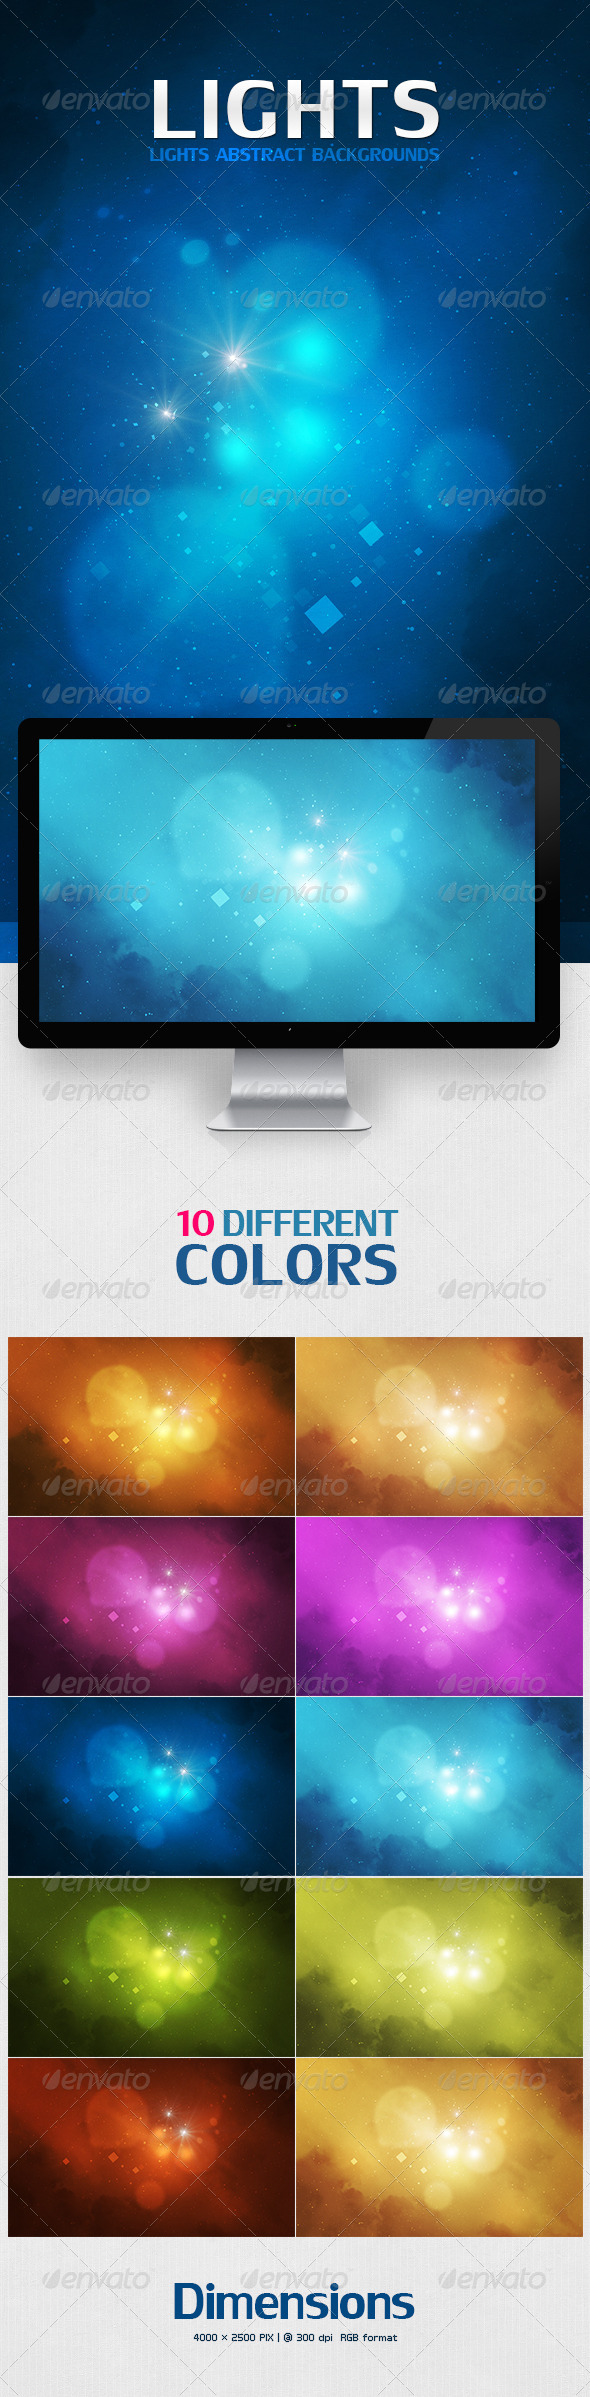 GraphicRiver Lights Abstract Backgrounds 7424410